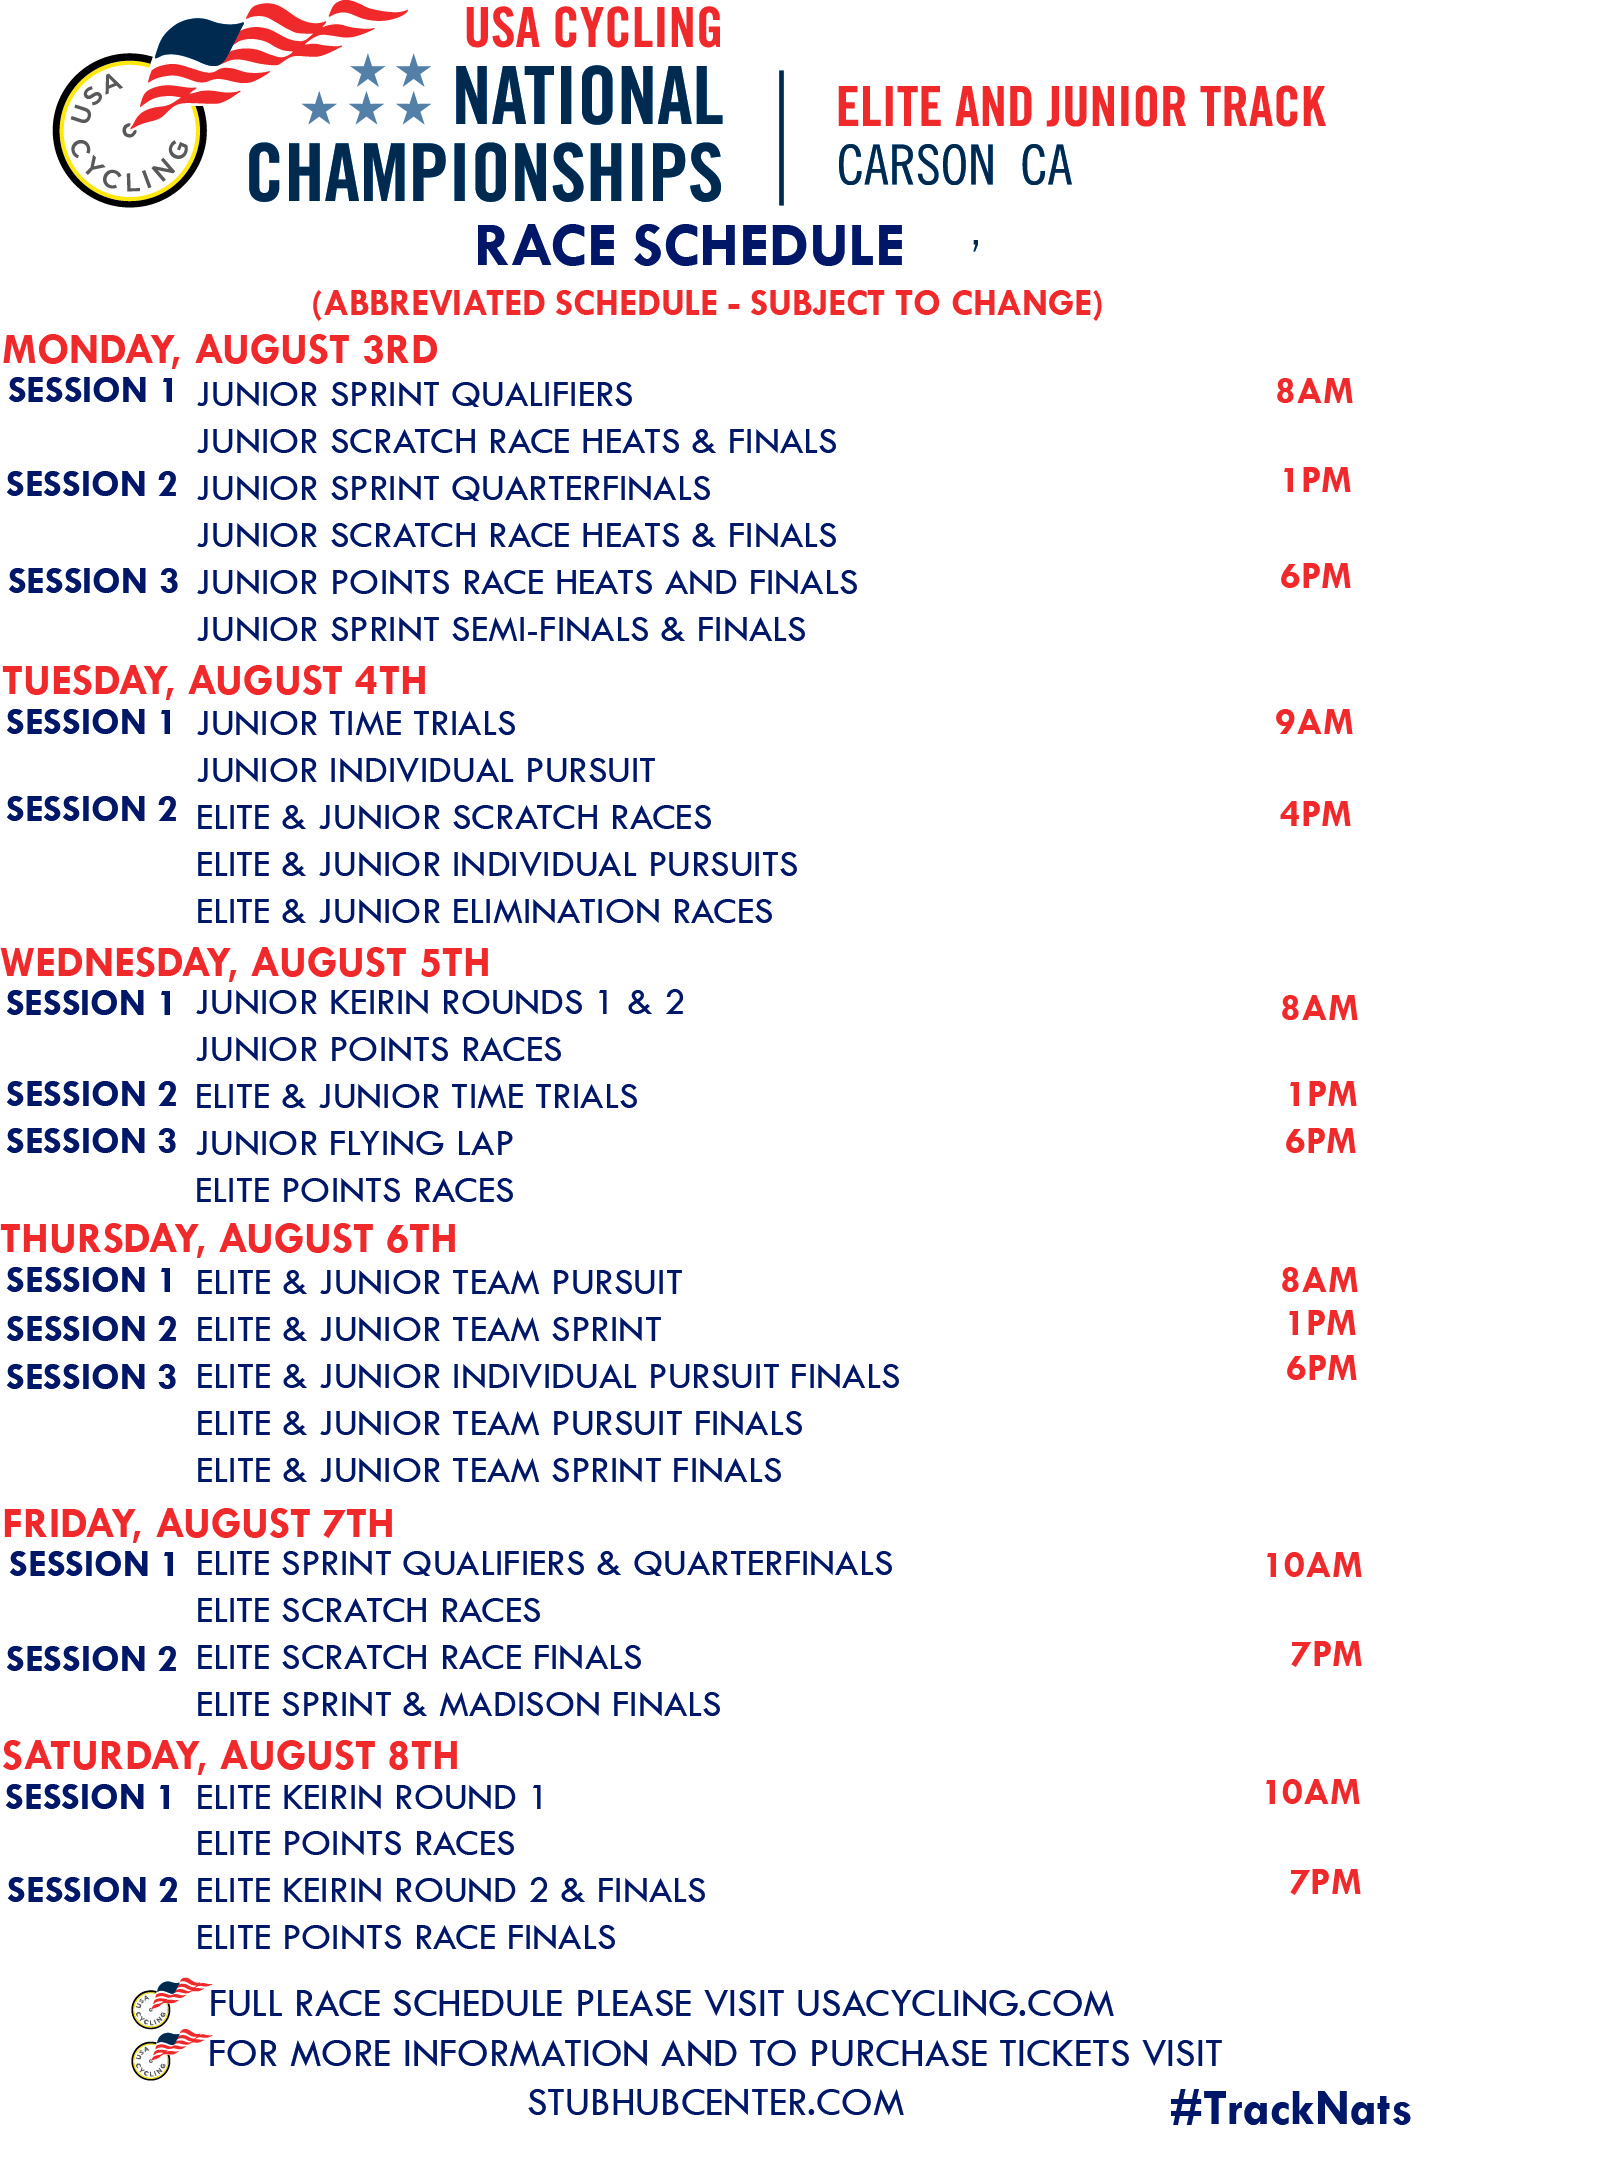 USAC Race Sched for CT copy.jpg